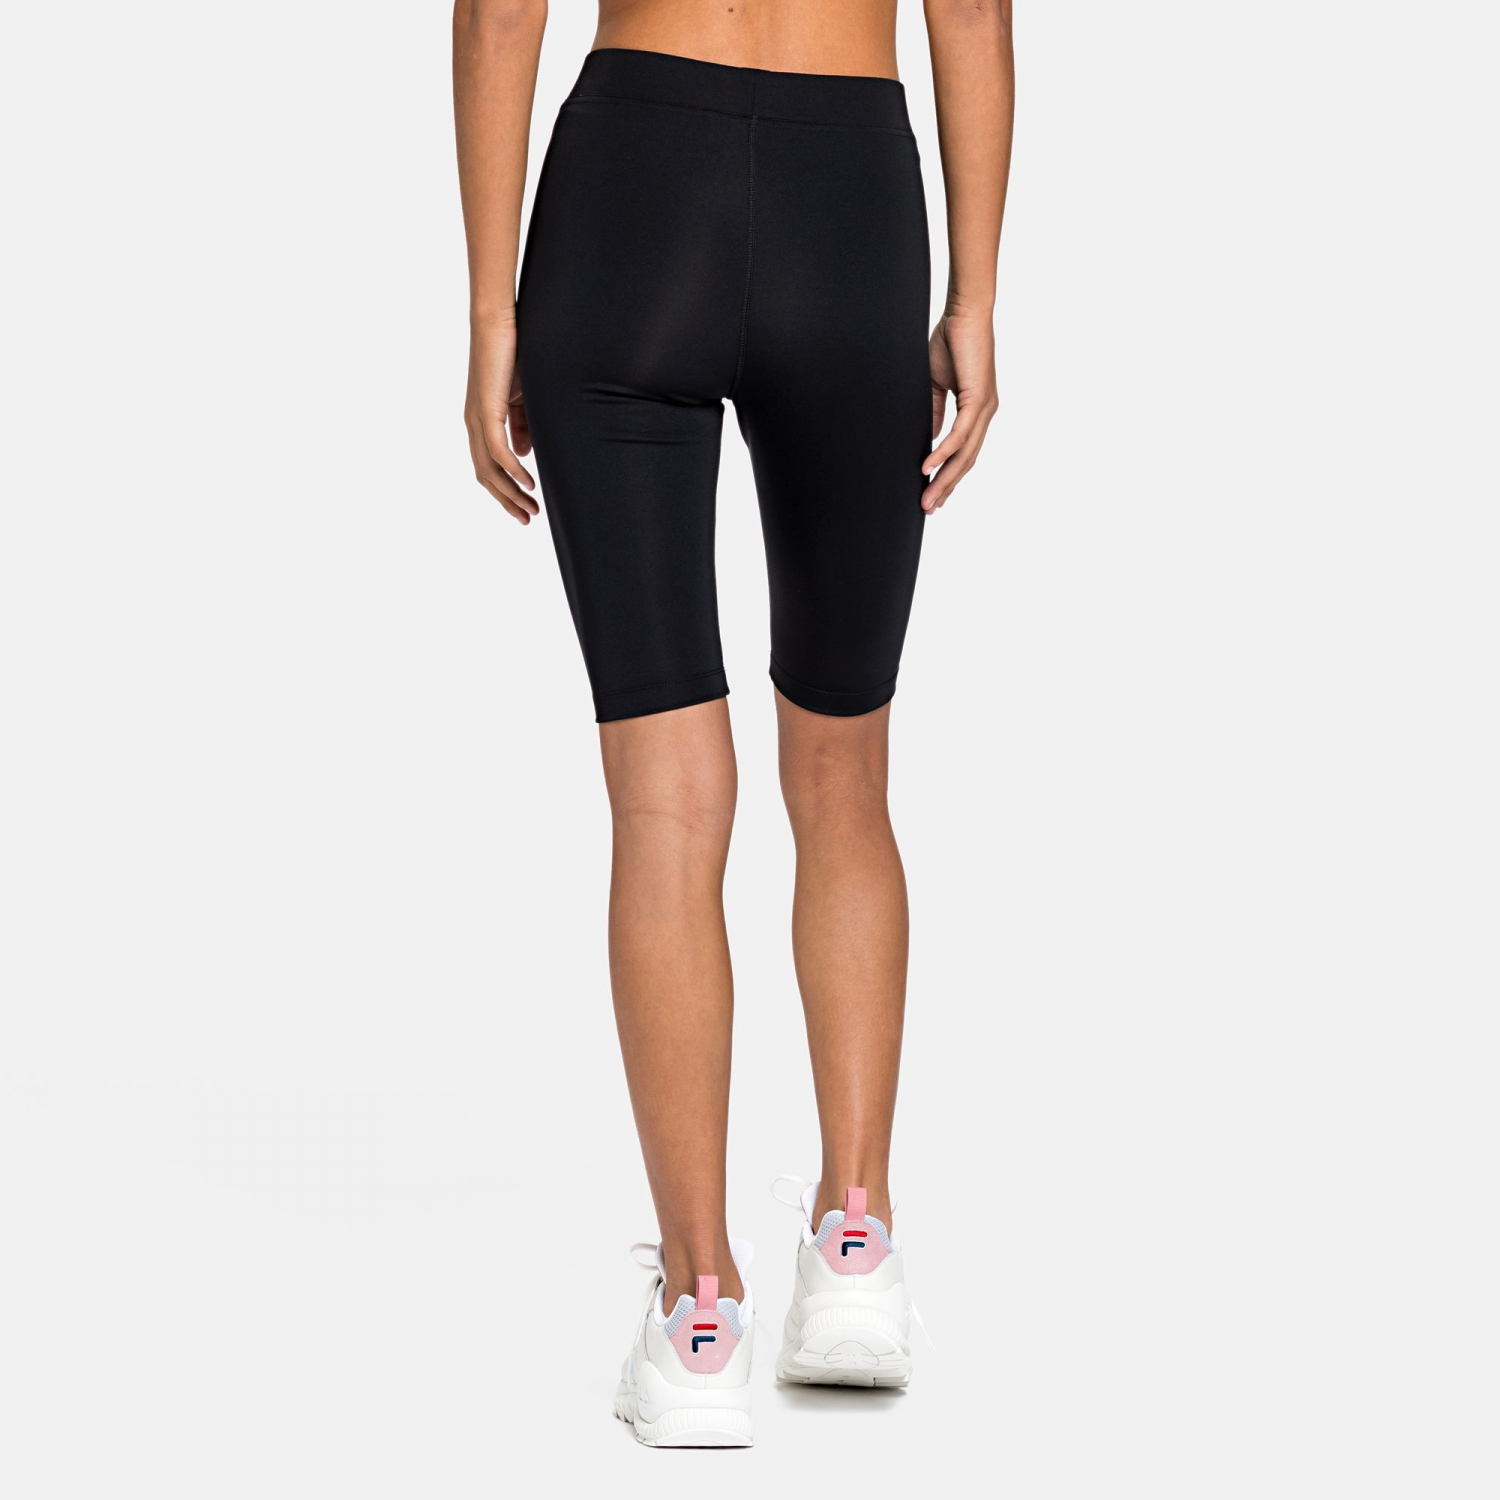 Fila Wmn Tendai Short Leggings black Bild 2